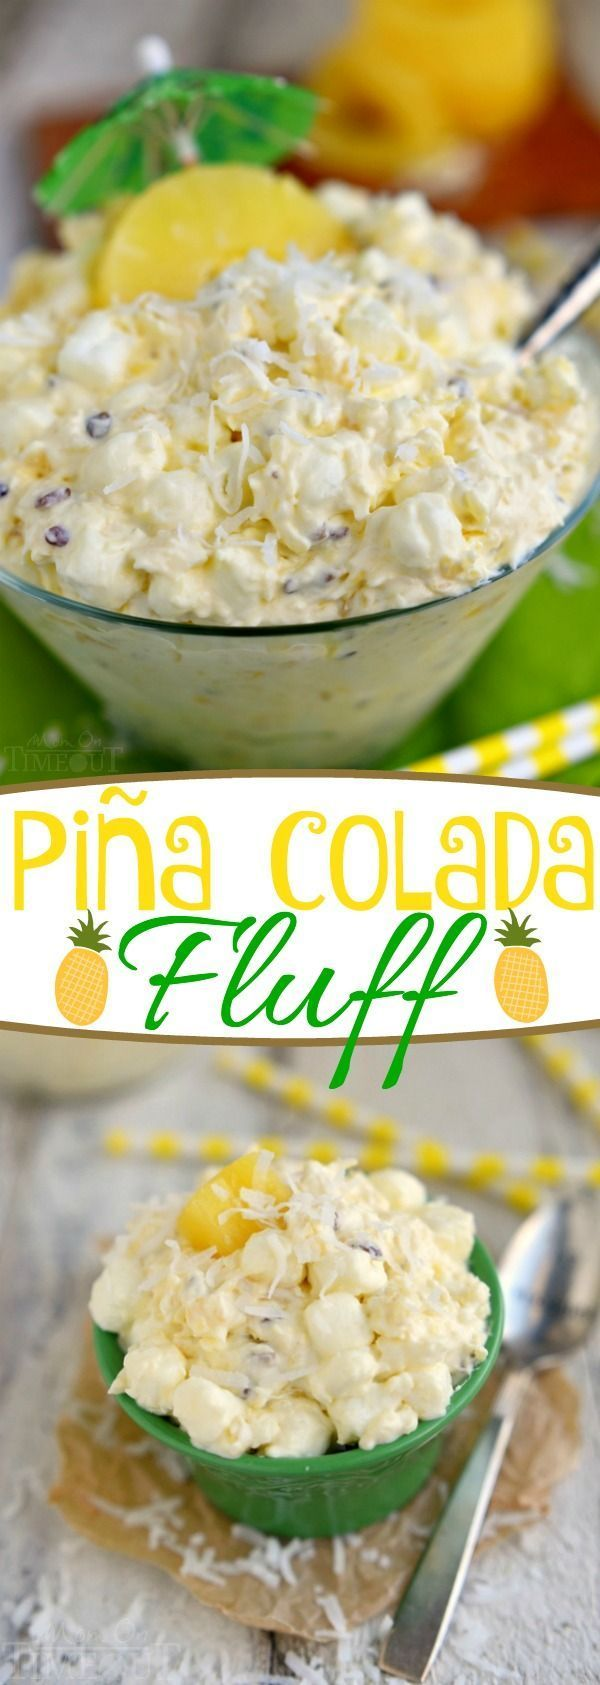 Pina Colada Fluff - a one-bowl, dump-and-go dessert salad that's both incredibly easy and delicious! Wonderful flavors of pineapple and coconut combine in this dangerously easy to eat dessert. The perfect addition to your potluck or party!  // Mom On Timeout